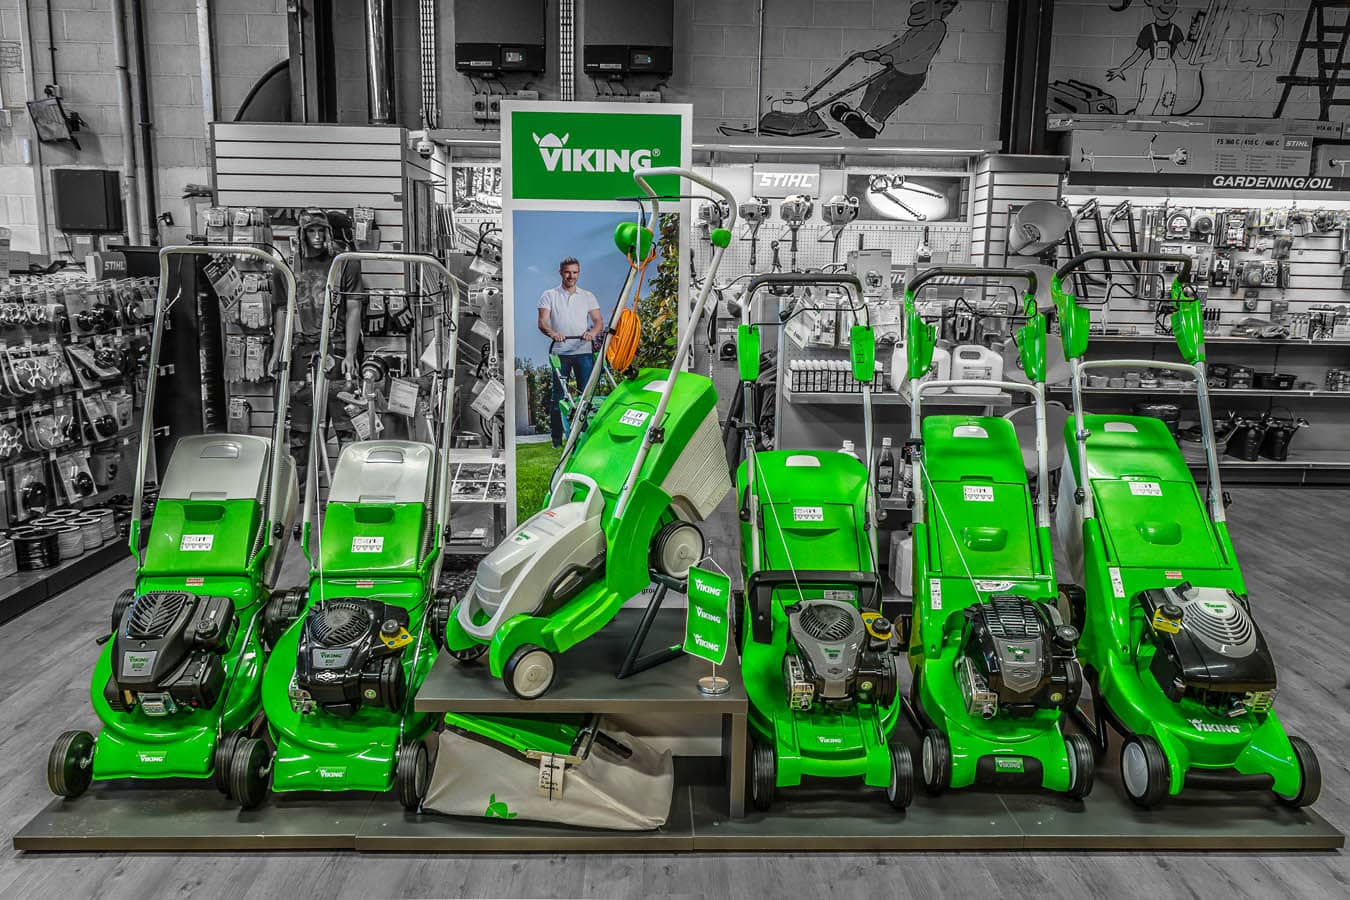 green Viking lawn mowers in a line